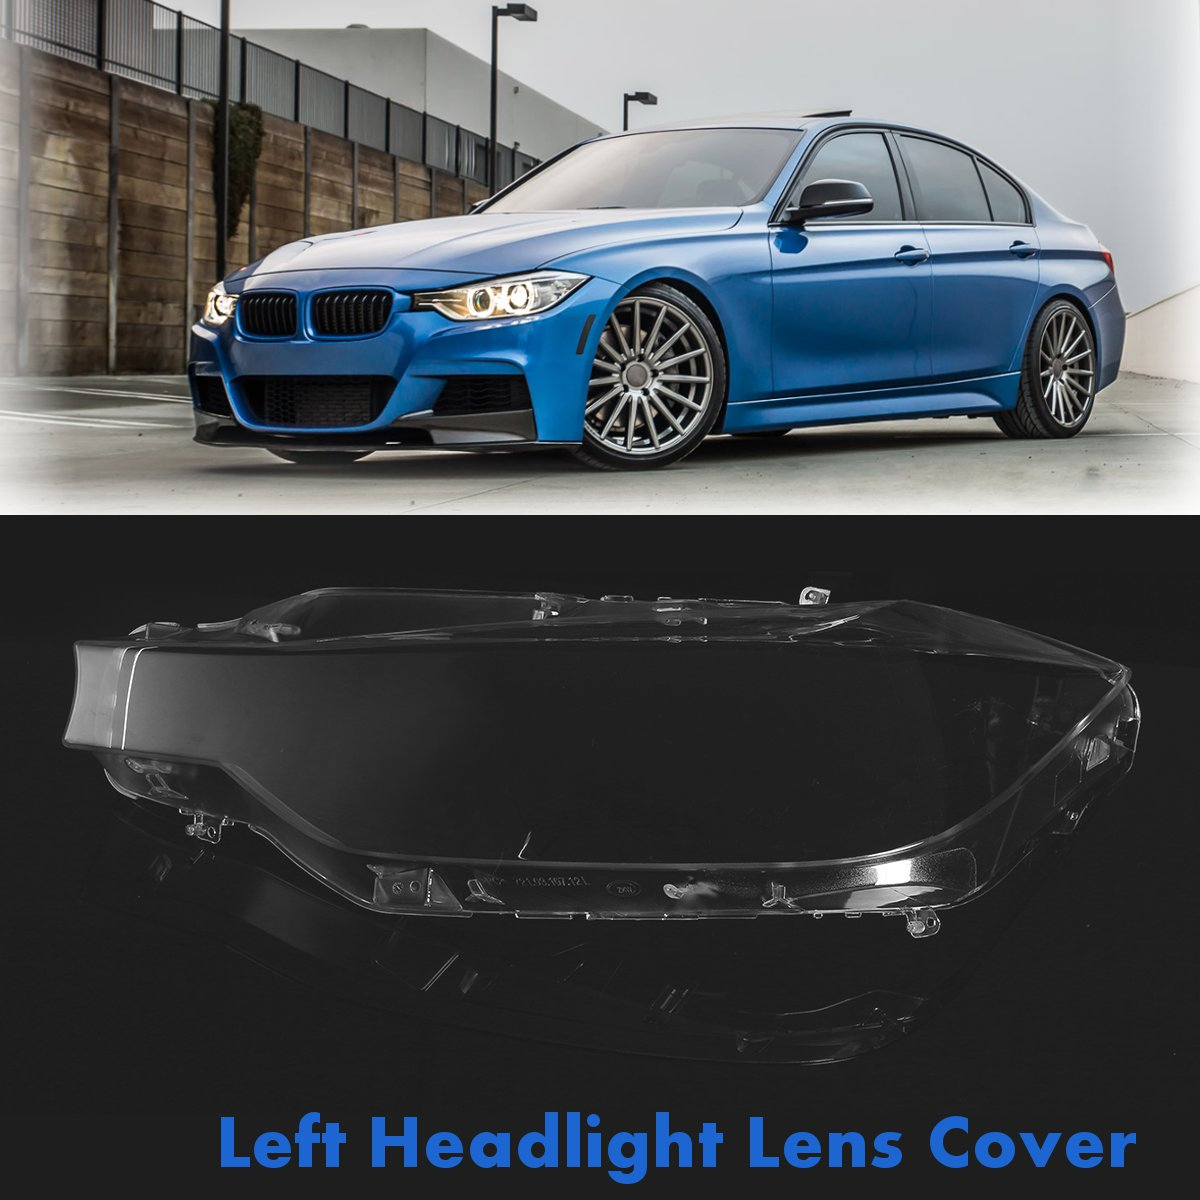 Front Left Car Headlight Headlamp Lens Cover Clear Lenses For BMW F30 F31 For 3 Series Sedan Touring 2013-2016 2pcs polycarbonate headlamp headlight clear lens replacement covers case shell only xenon for bmw 3 e90 sedan e91 touring